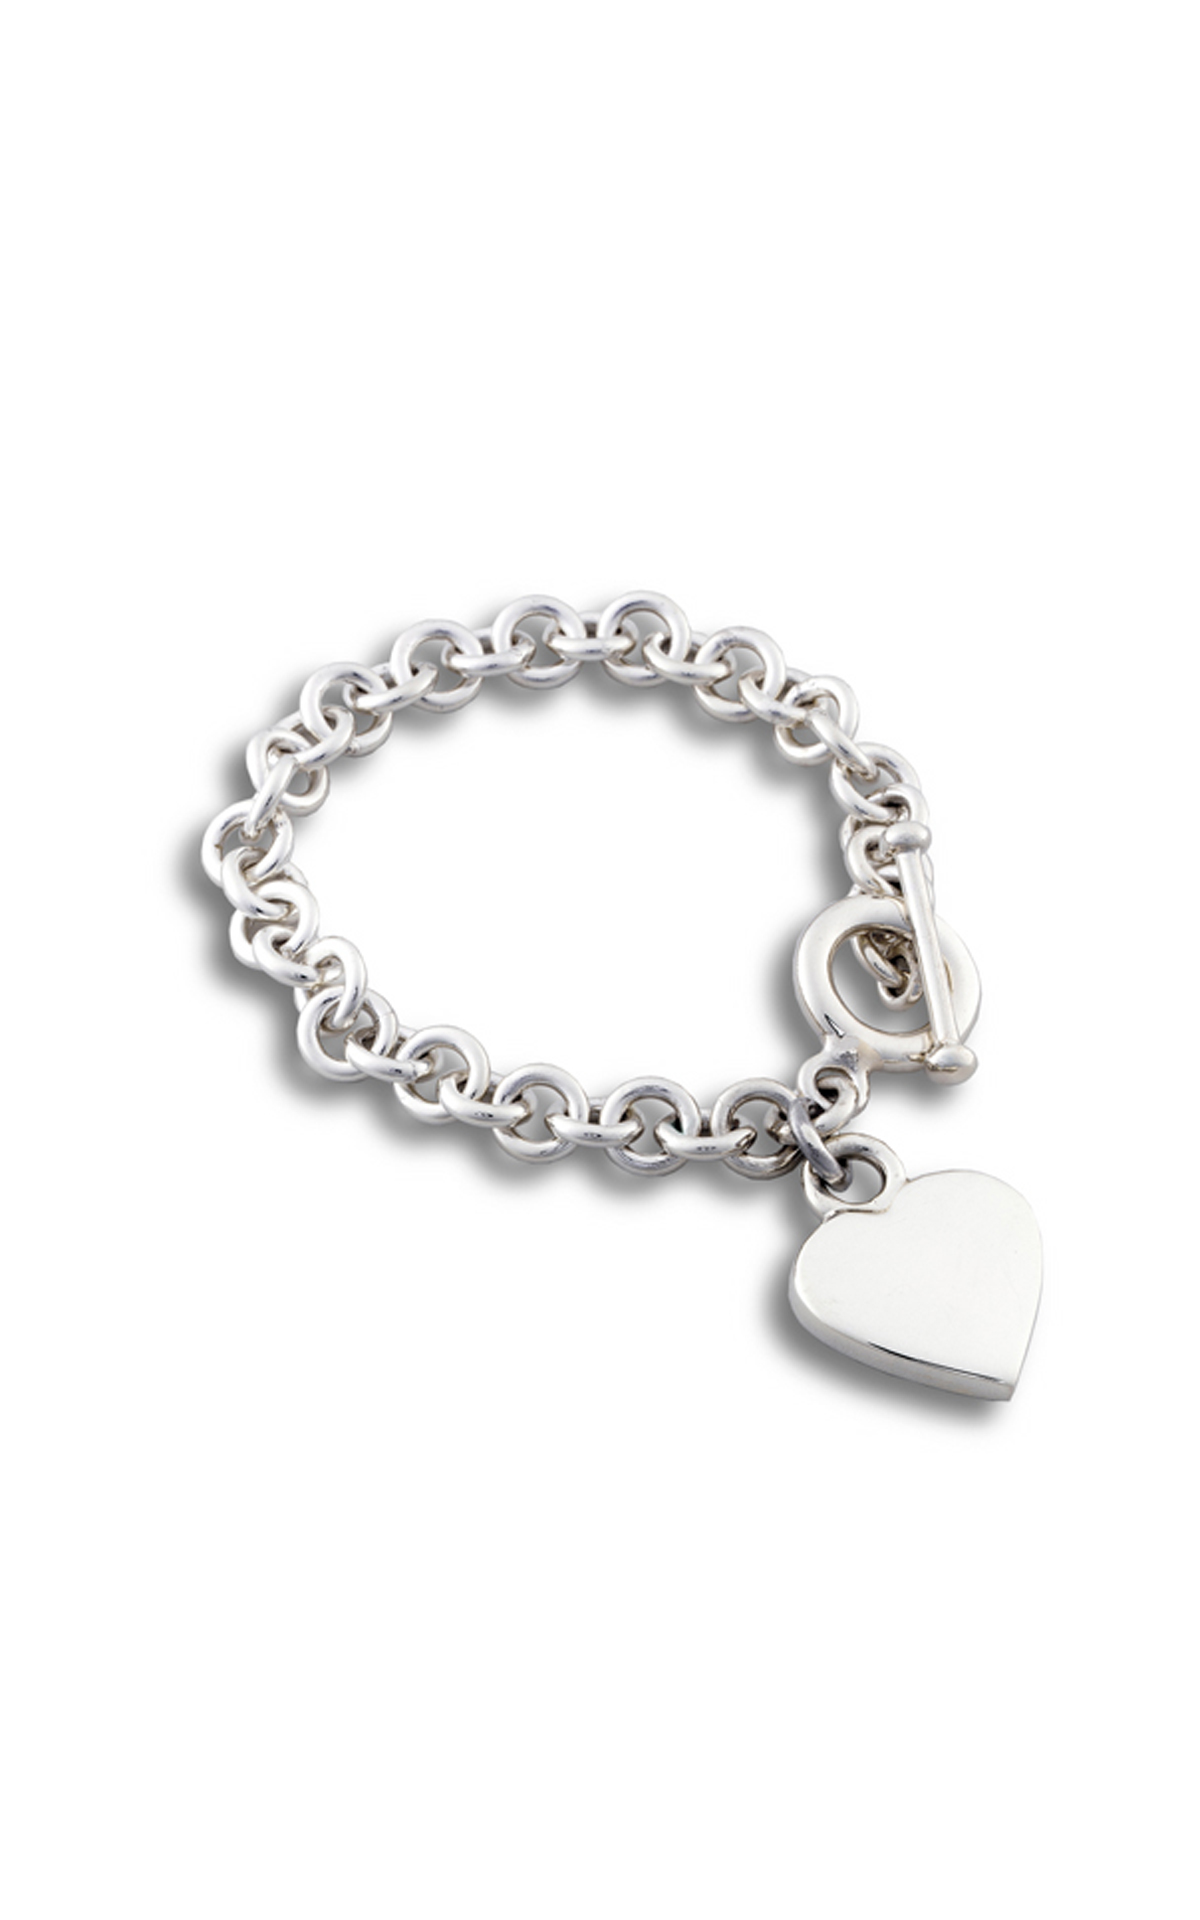 Zina Contemporary Bracelet A179-7 product image